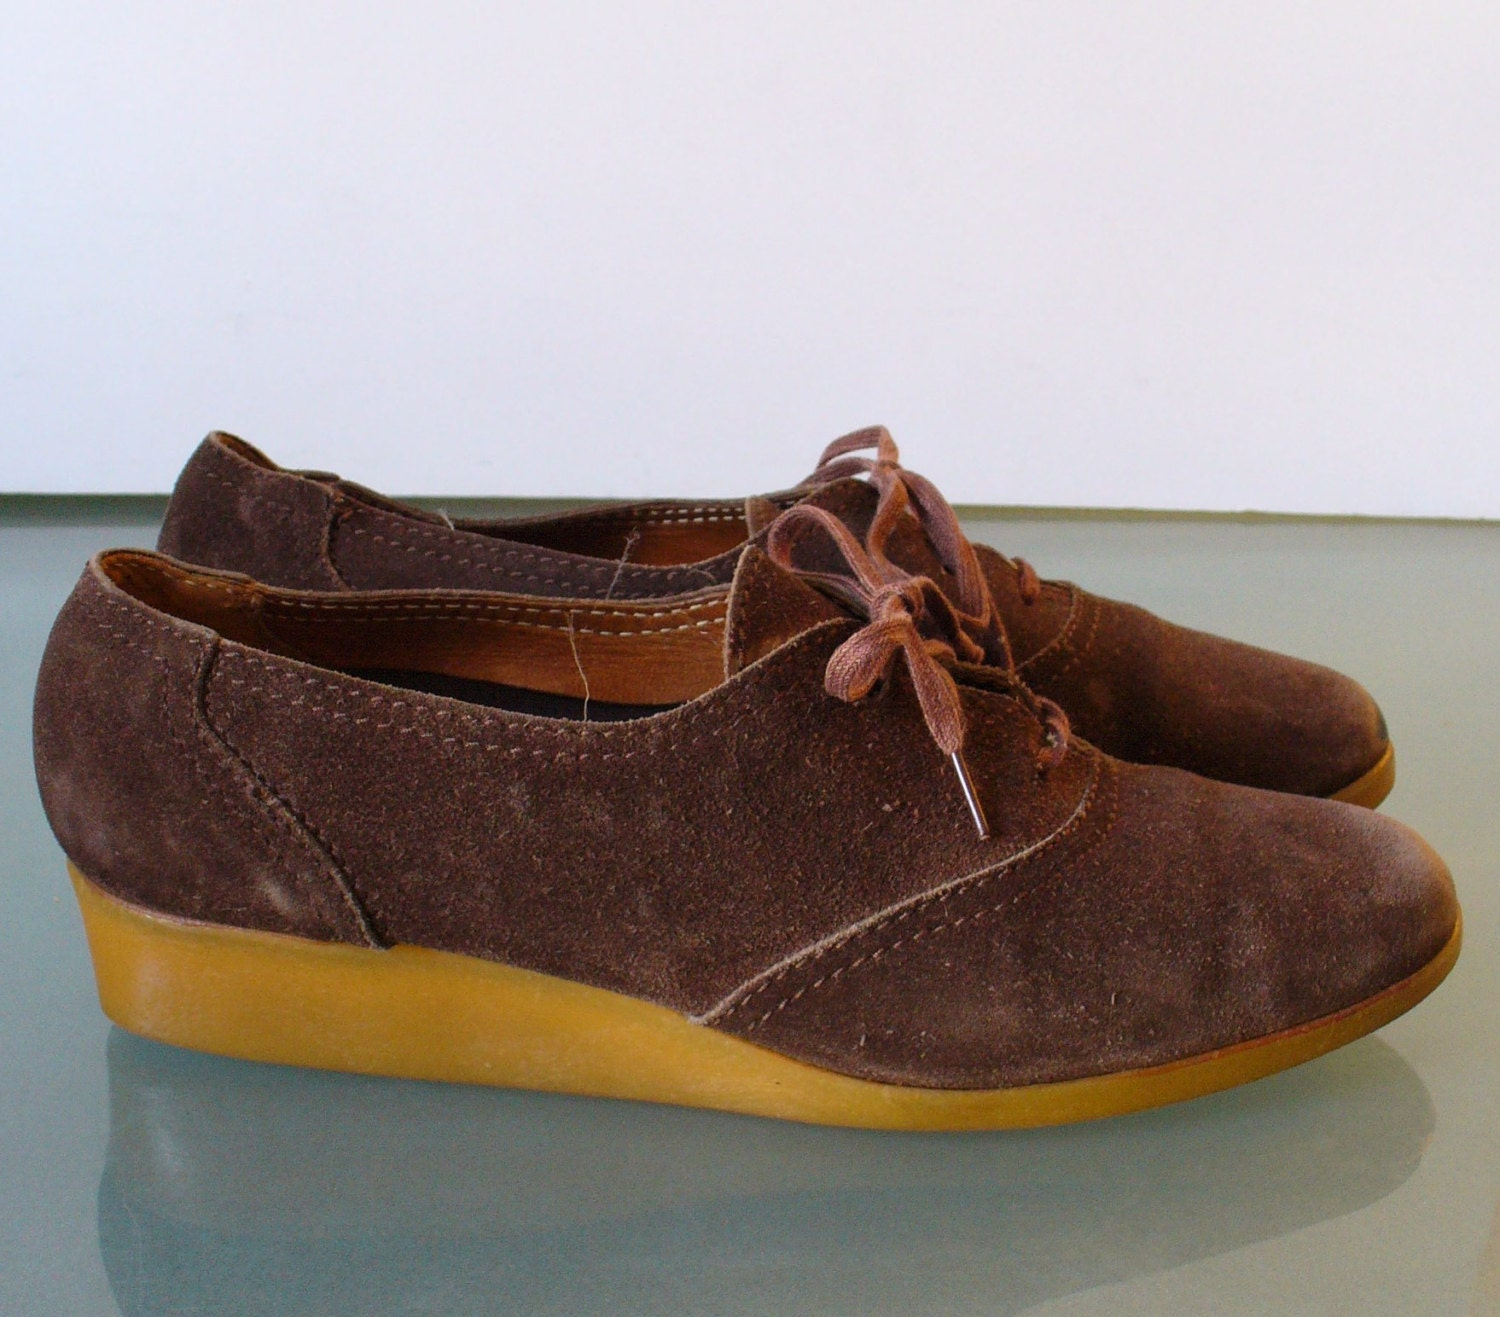 9ff9ff4e48659 Vintage Capezio Made in Italy Wedge Heel Suede Oxfords Size 7.5 US